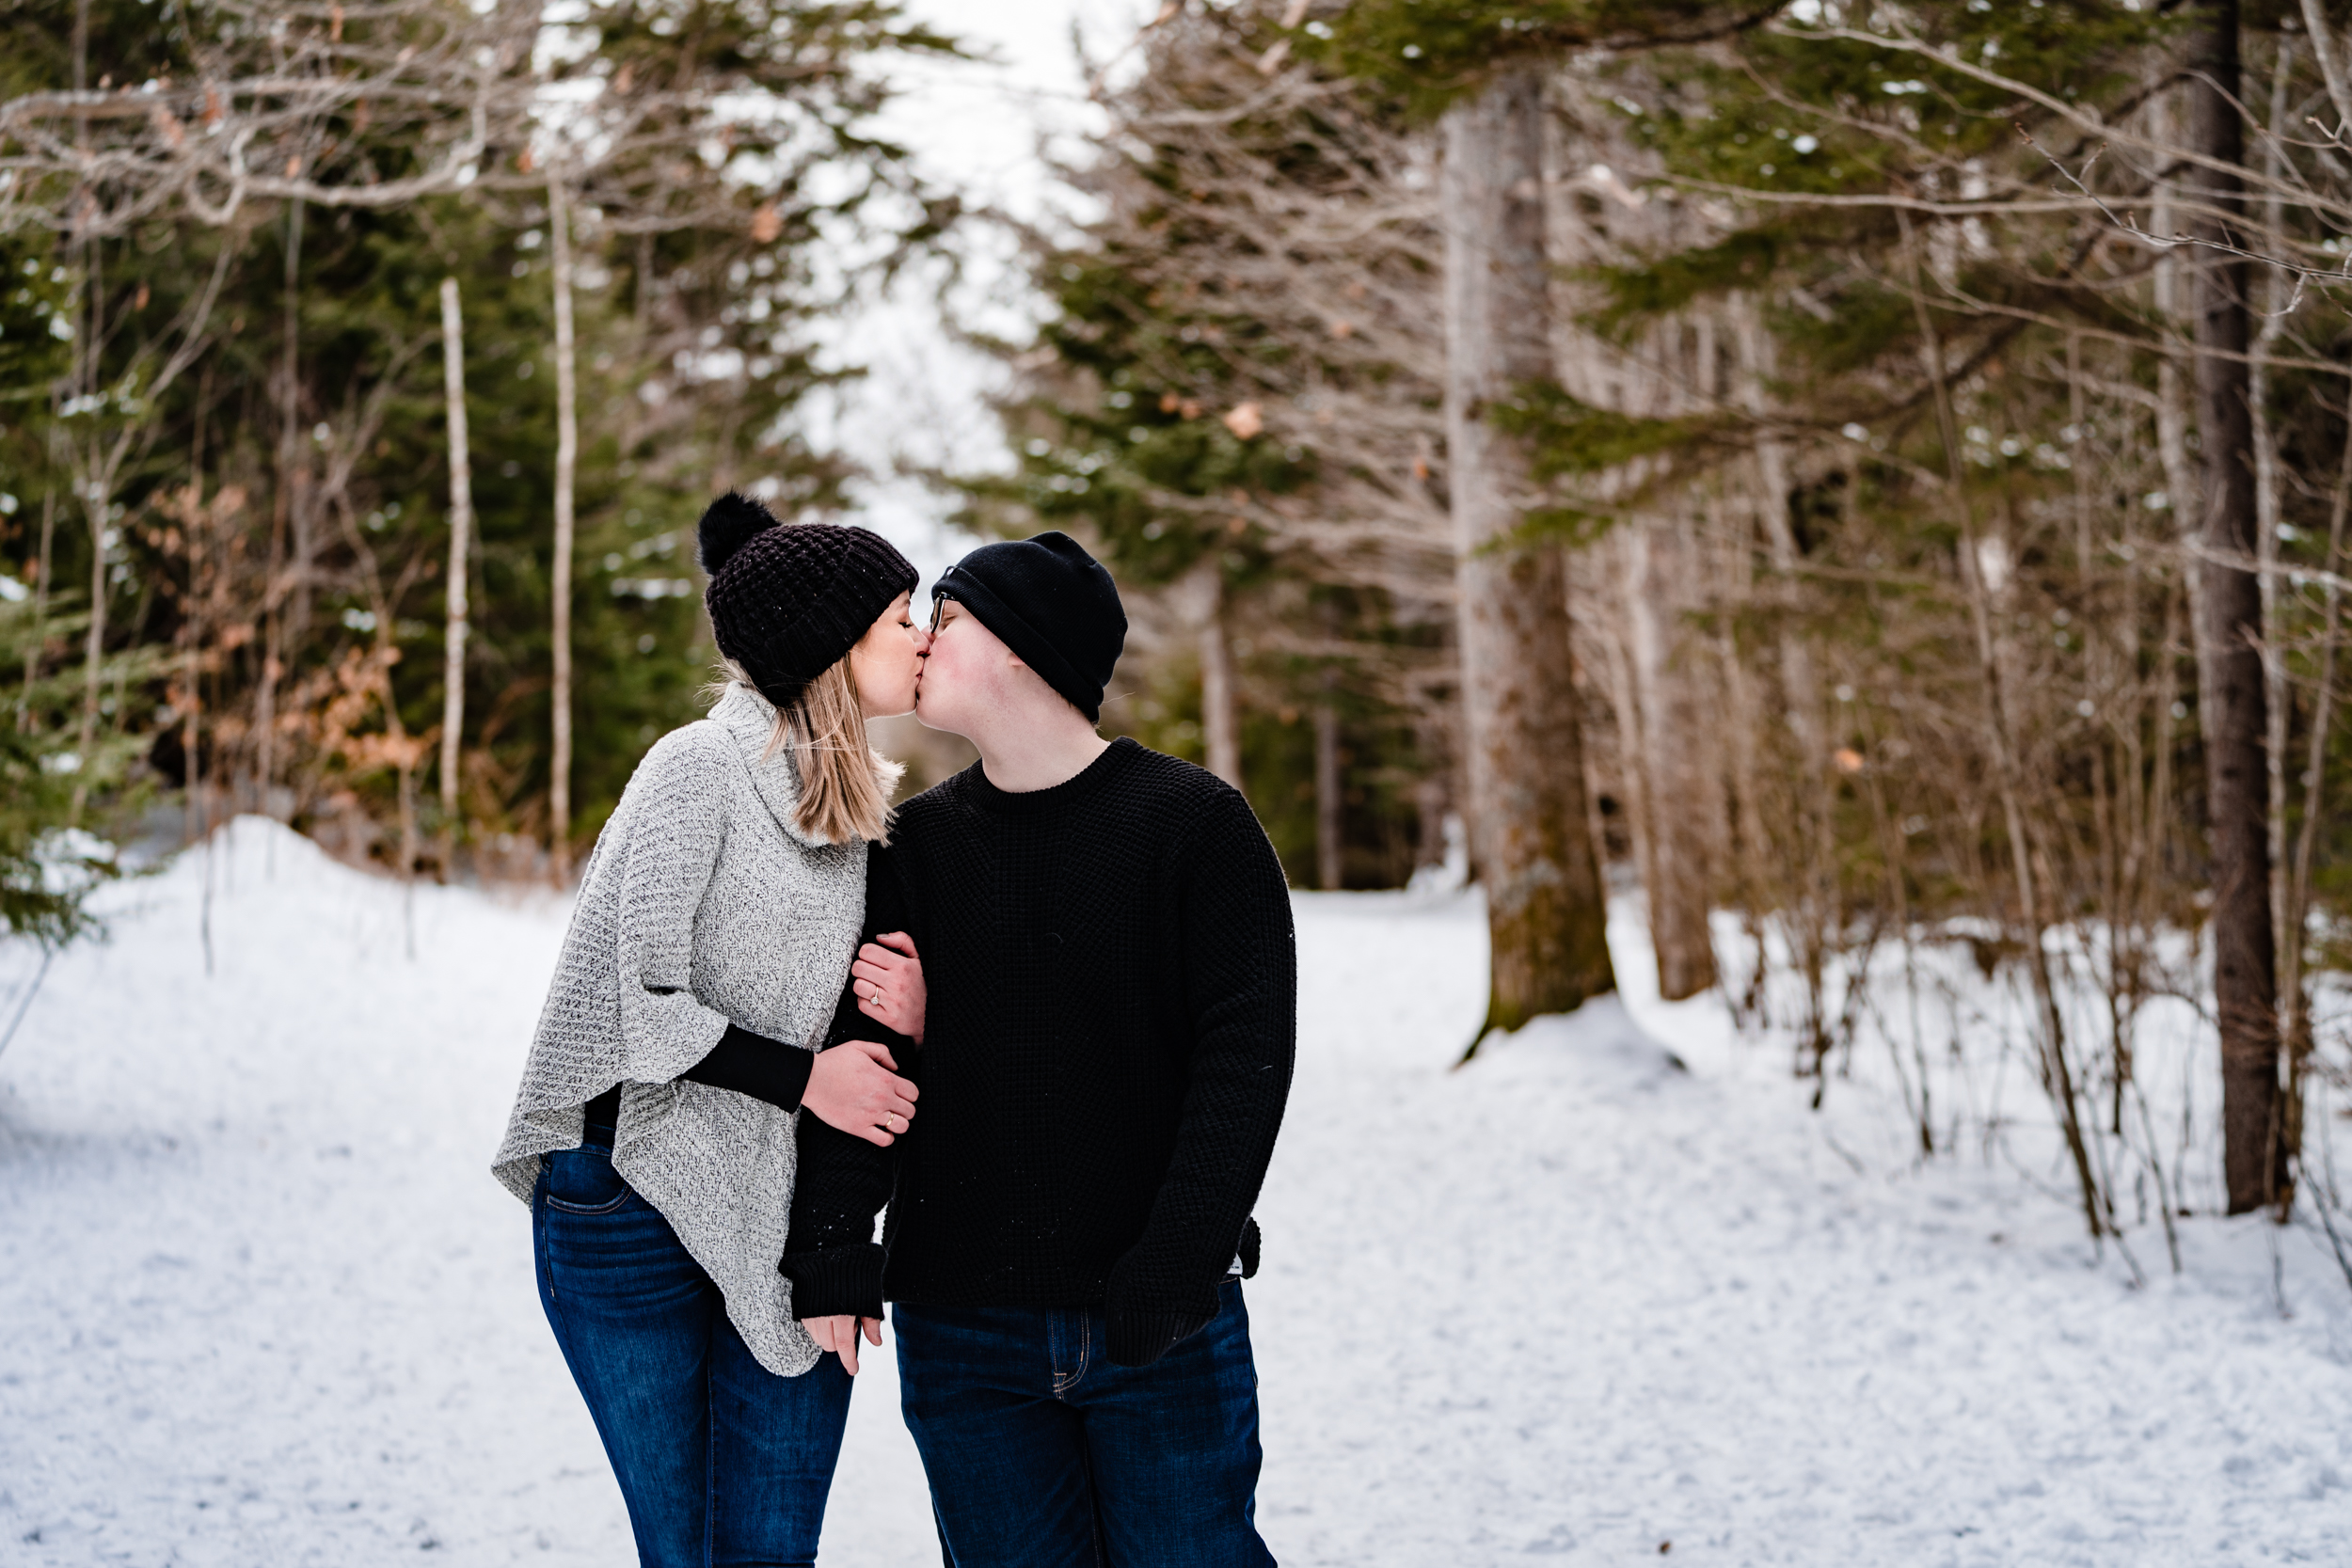 Haley&Brandon (64 of 64)halifax-novascotia-engagementphotography-wedding-foxandfellow-Ottawa-winter.jpg